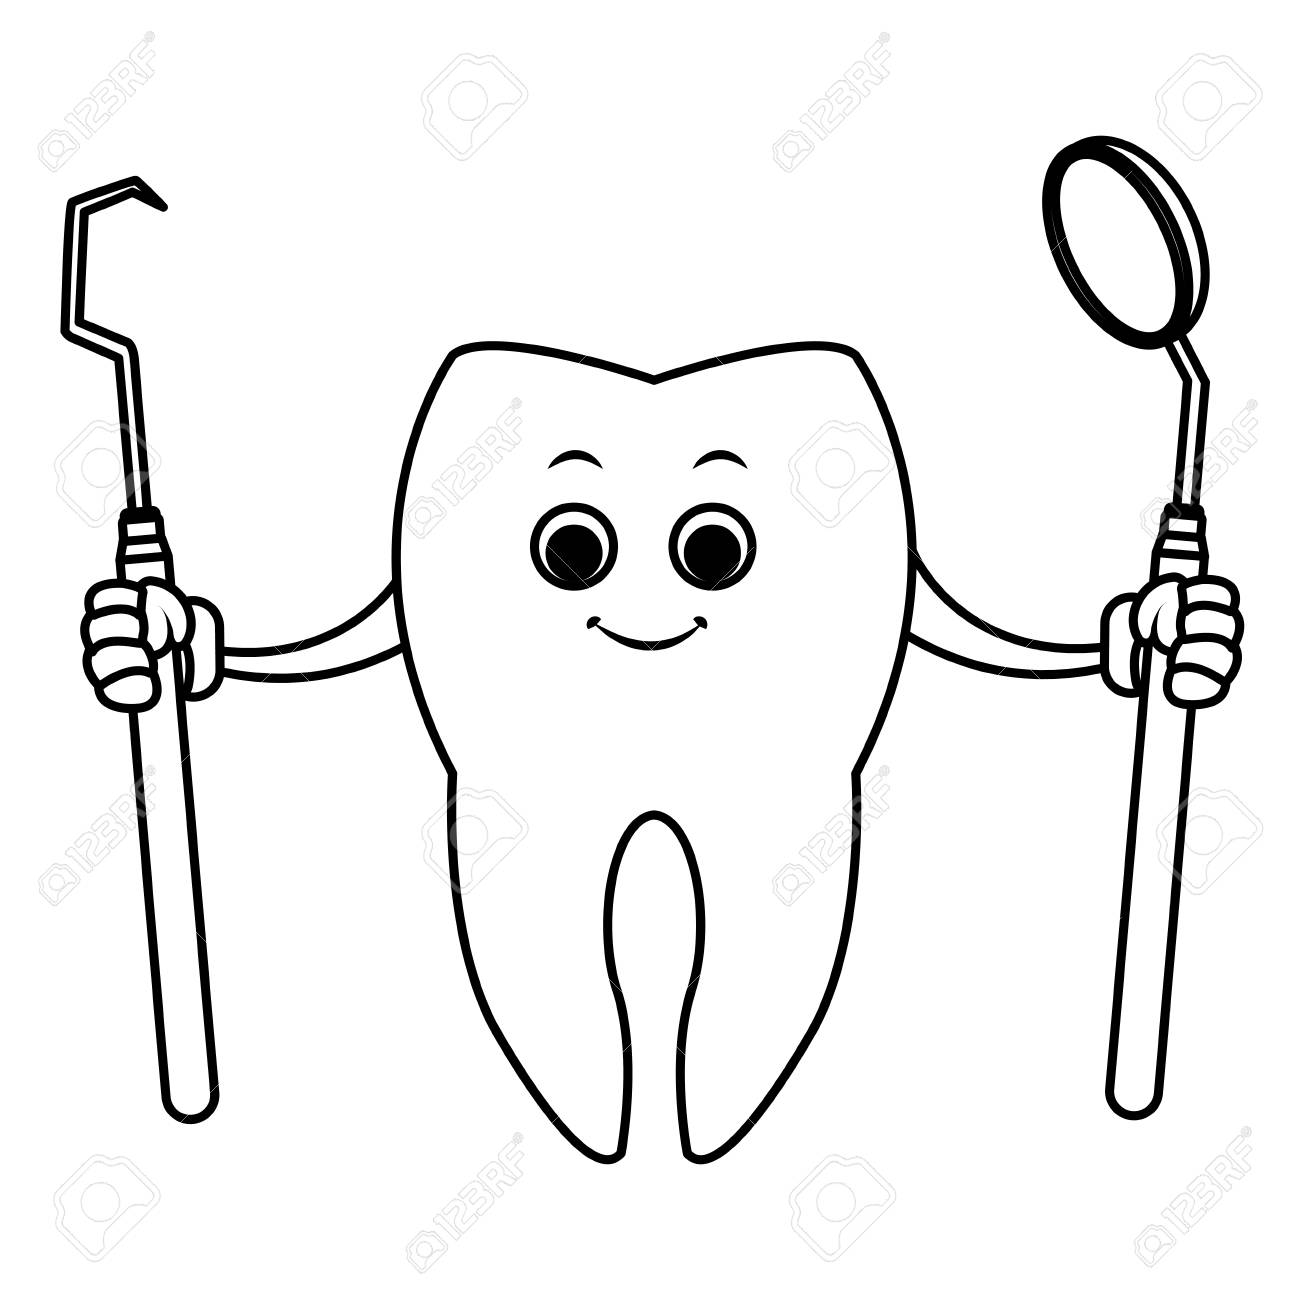 Tooth with dental tools cartoon icon vector illustration graphic...